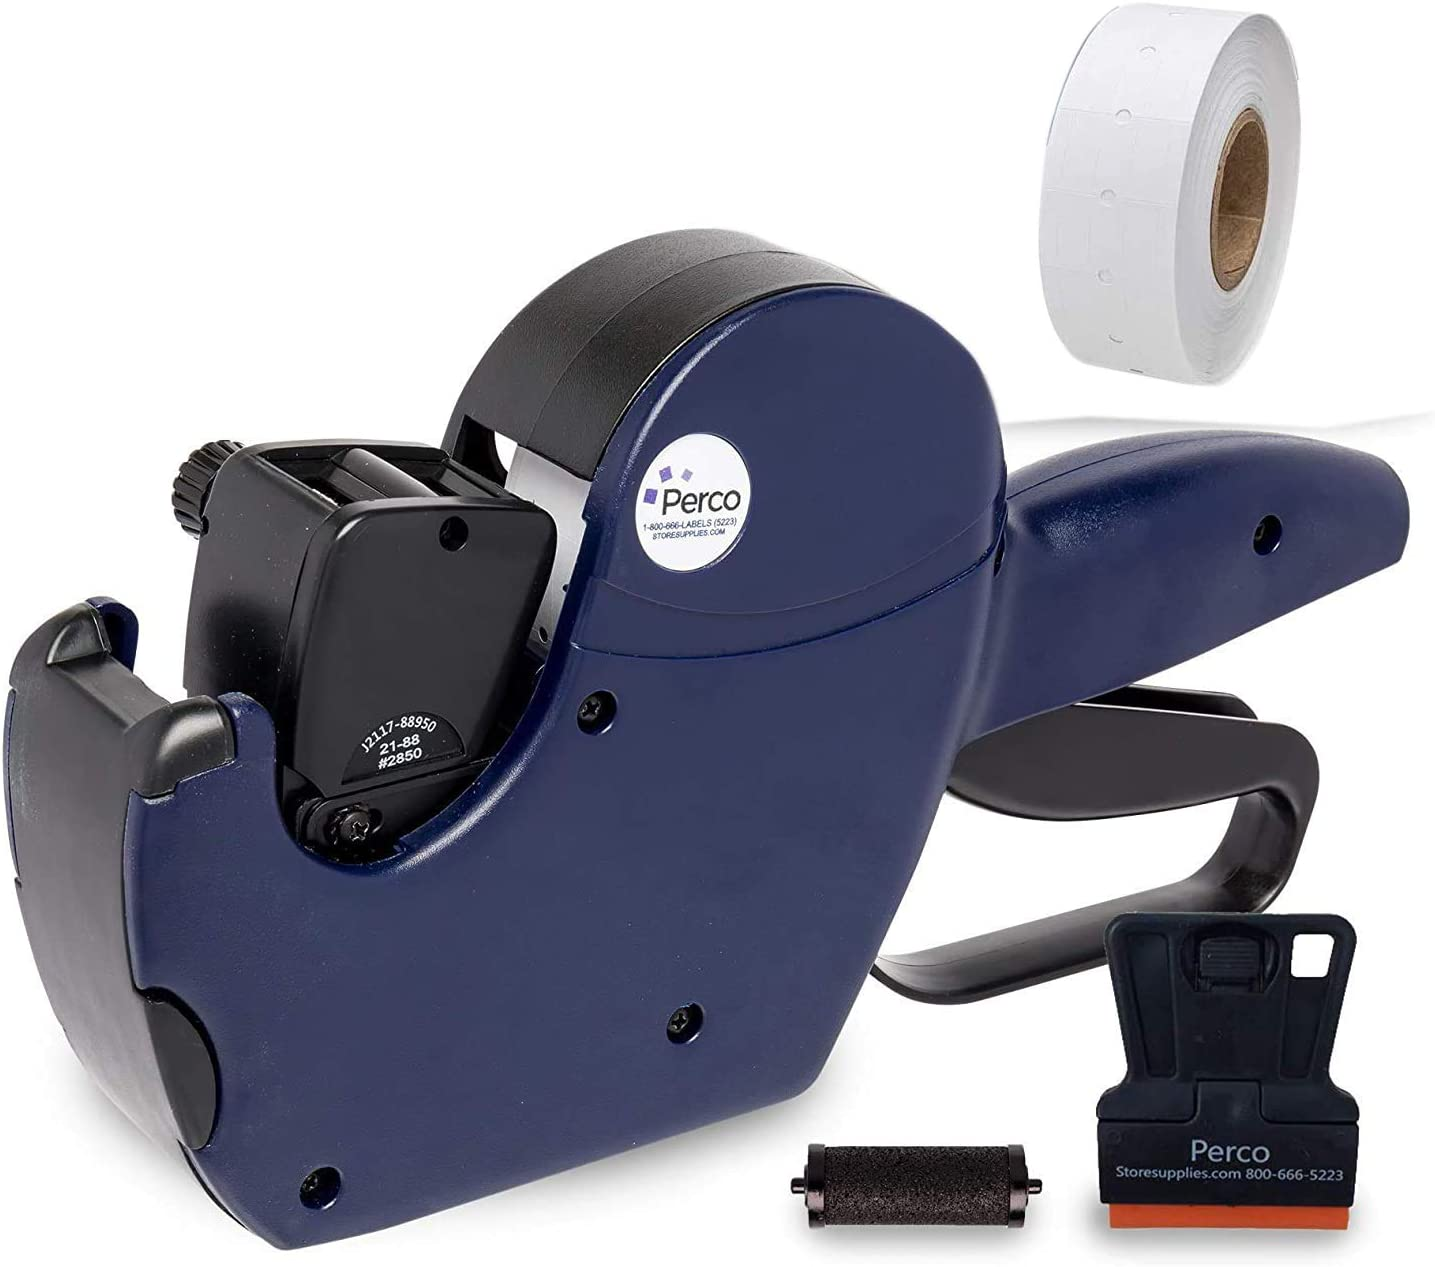 Perco Pro 2 Line Price Gun, 8 Digit 2 Line Price Label Gun Preloaded with Roll of 750 White Labels & Inker